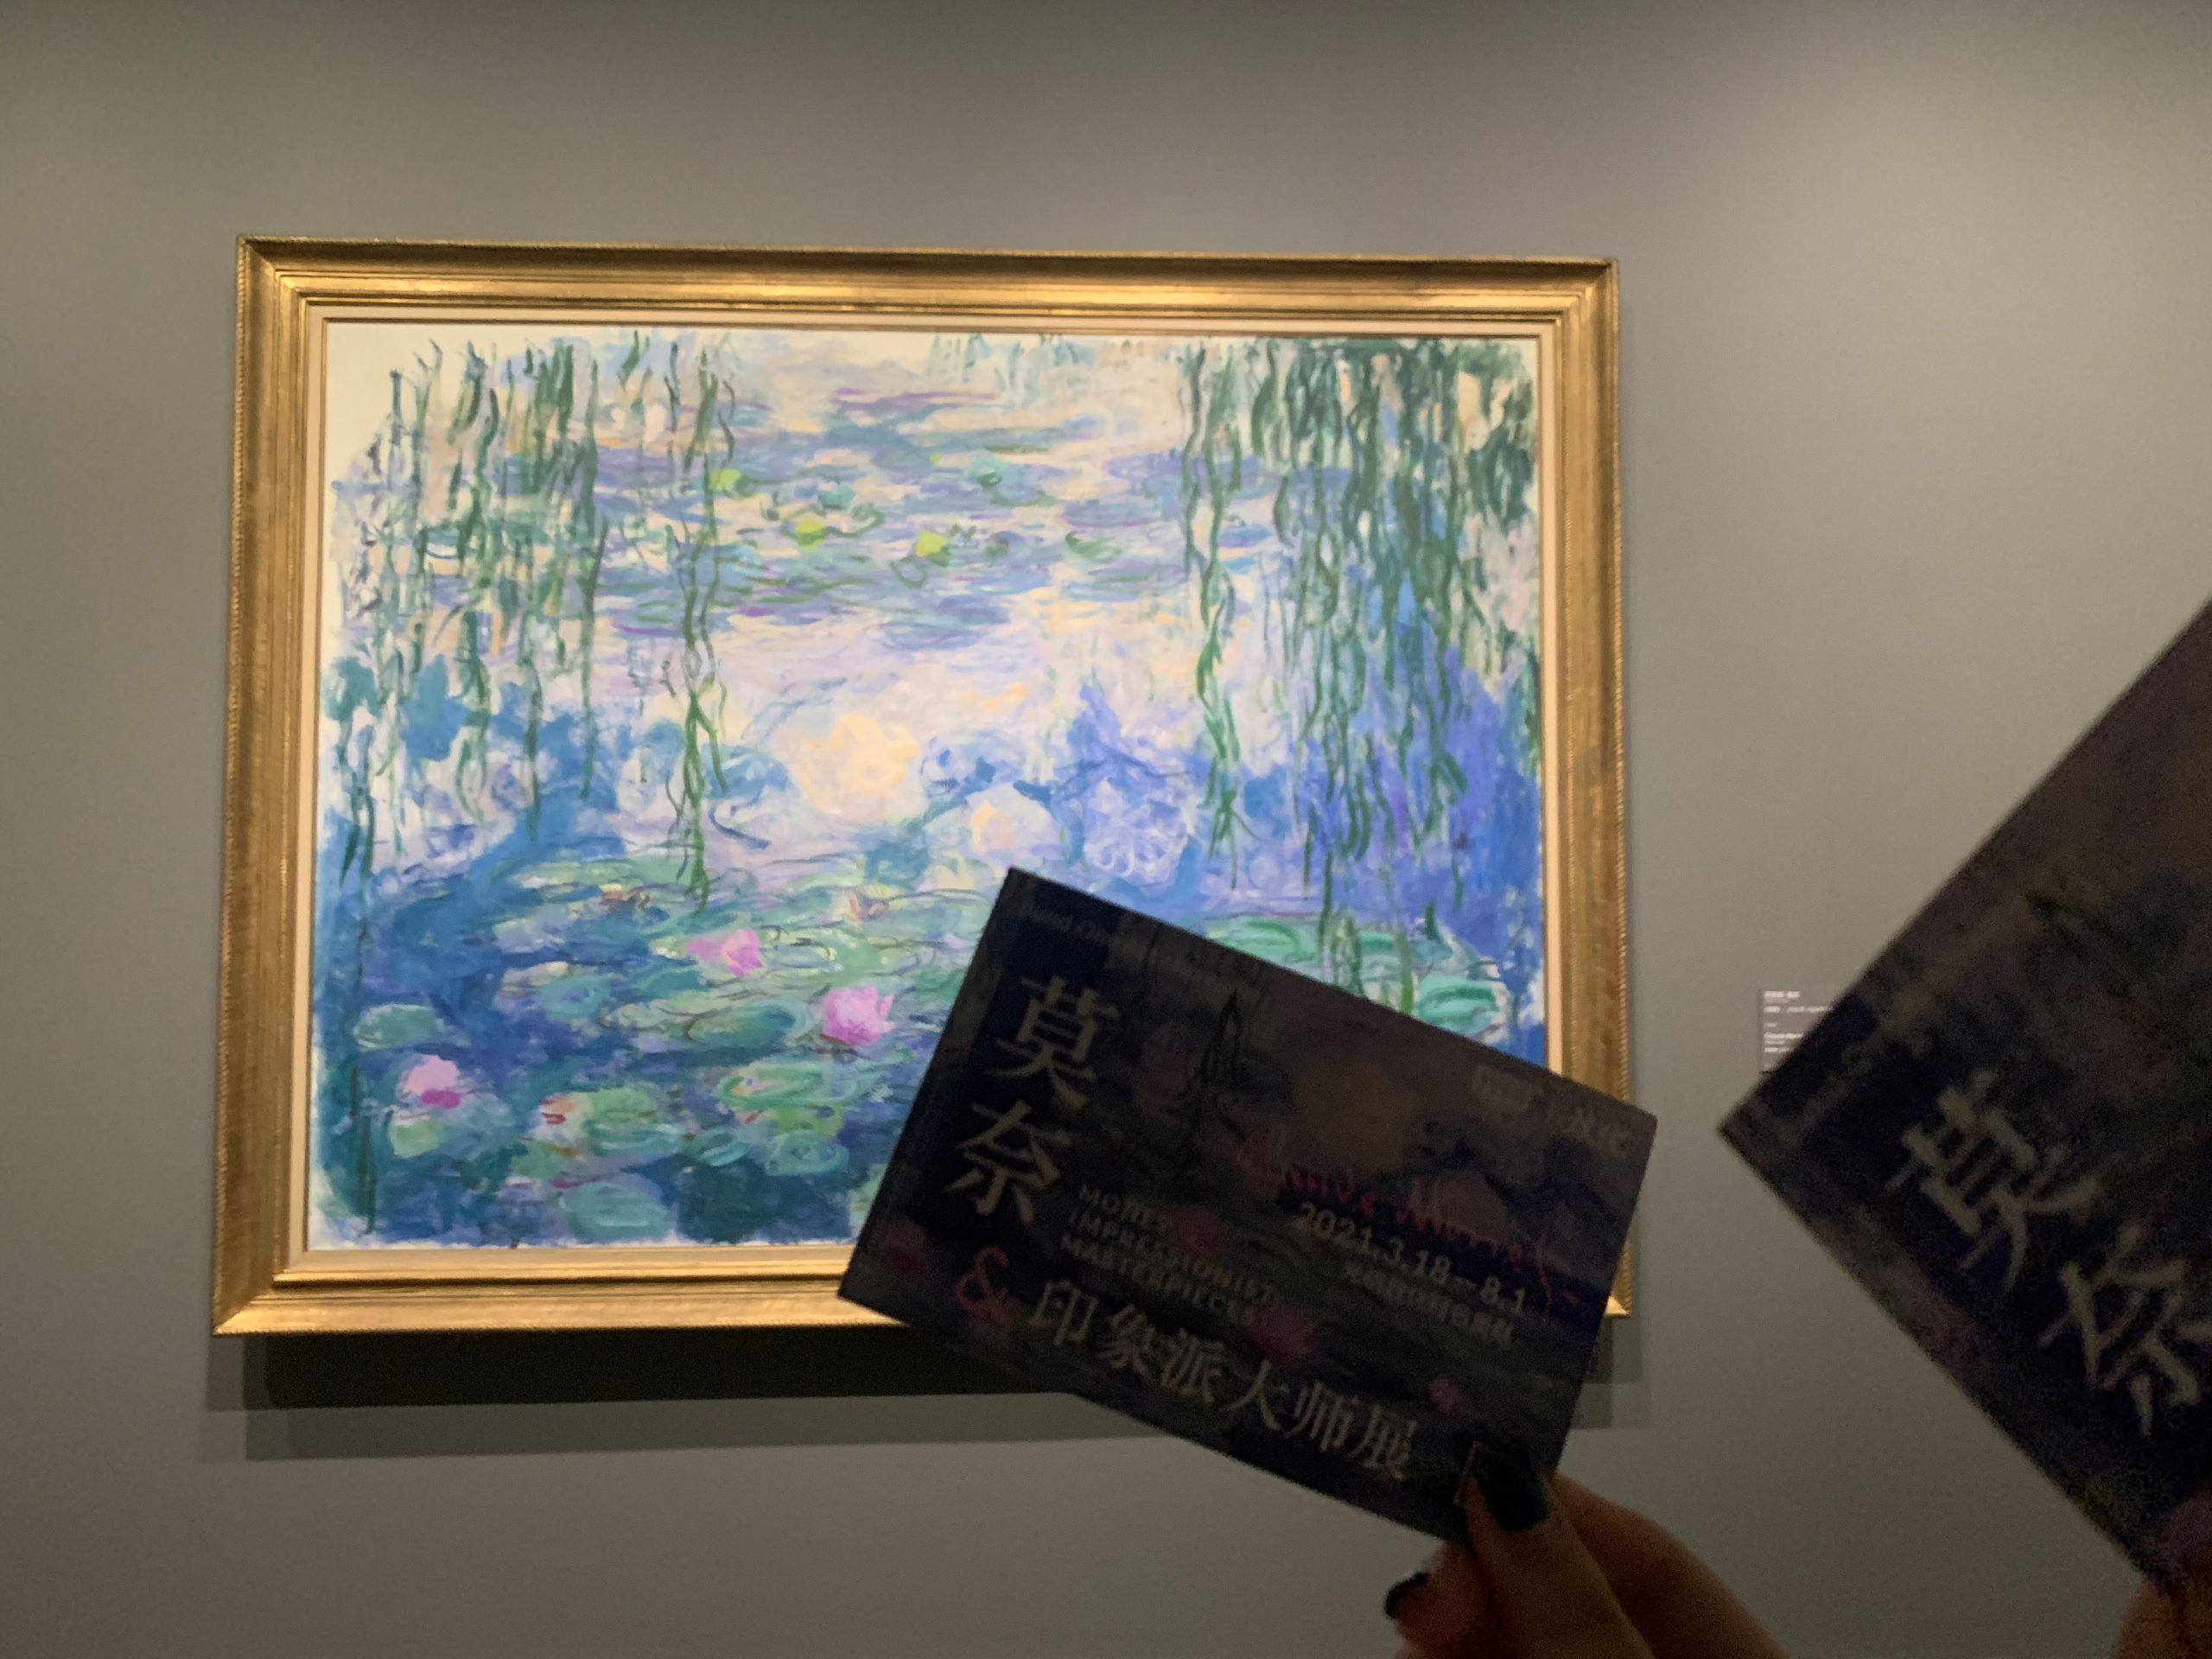 a monet painting on a wall with a person's hand in front of it